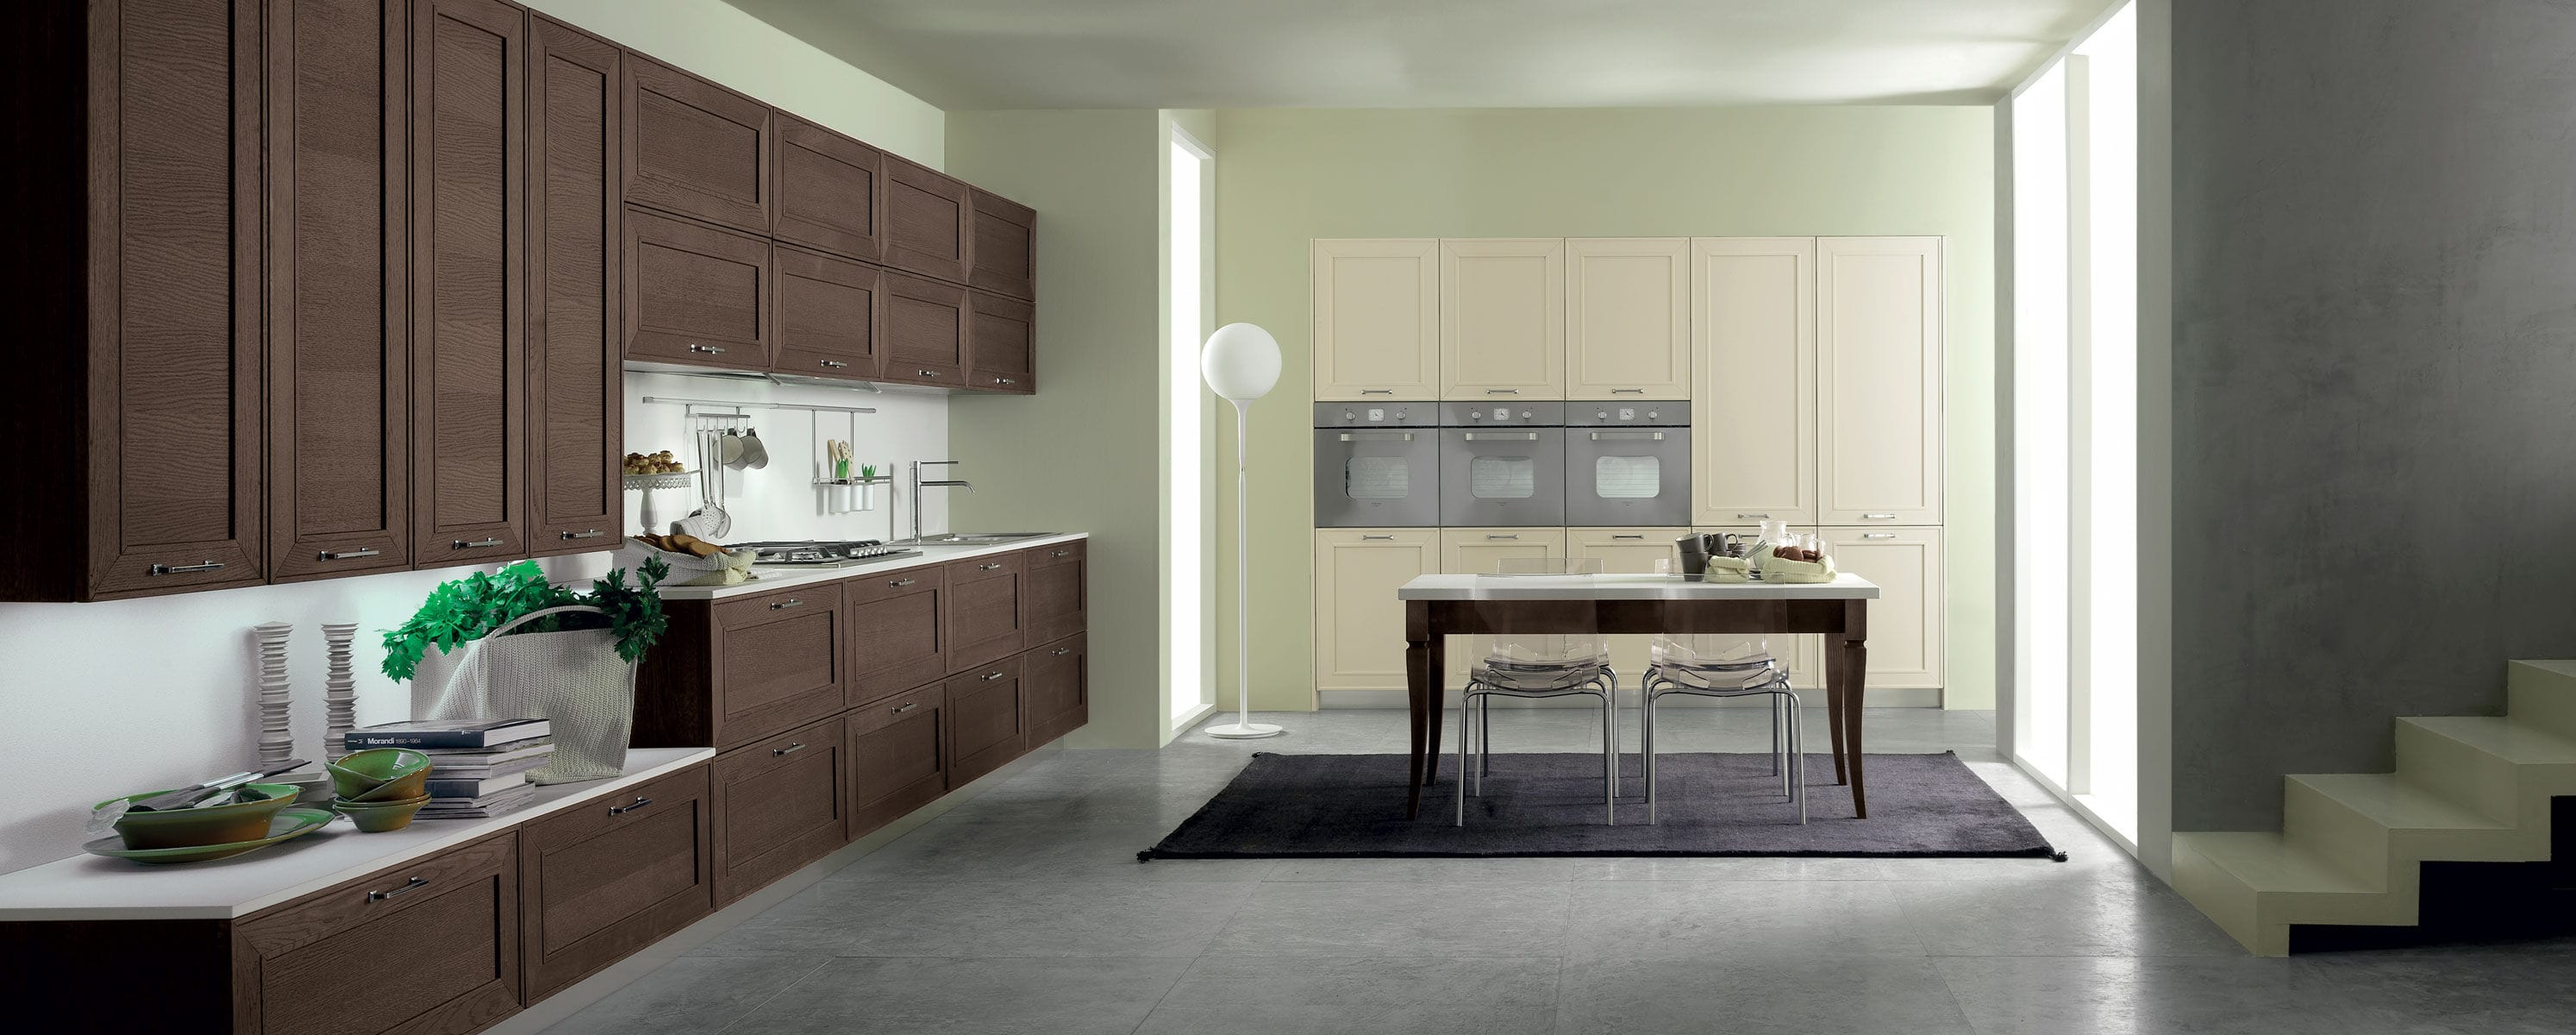 Traditional kitchen solid wood CAPALBIO by Centro Ricerca e